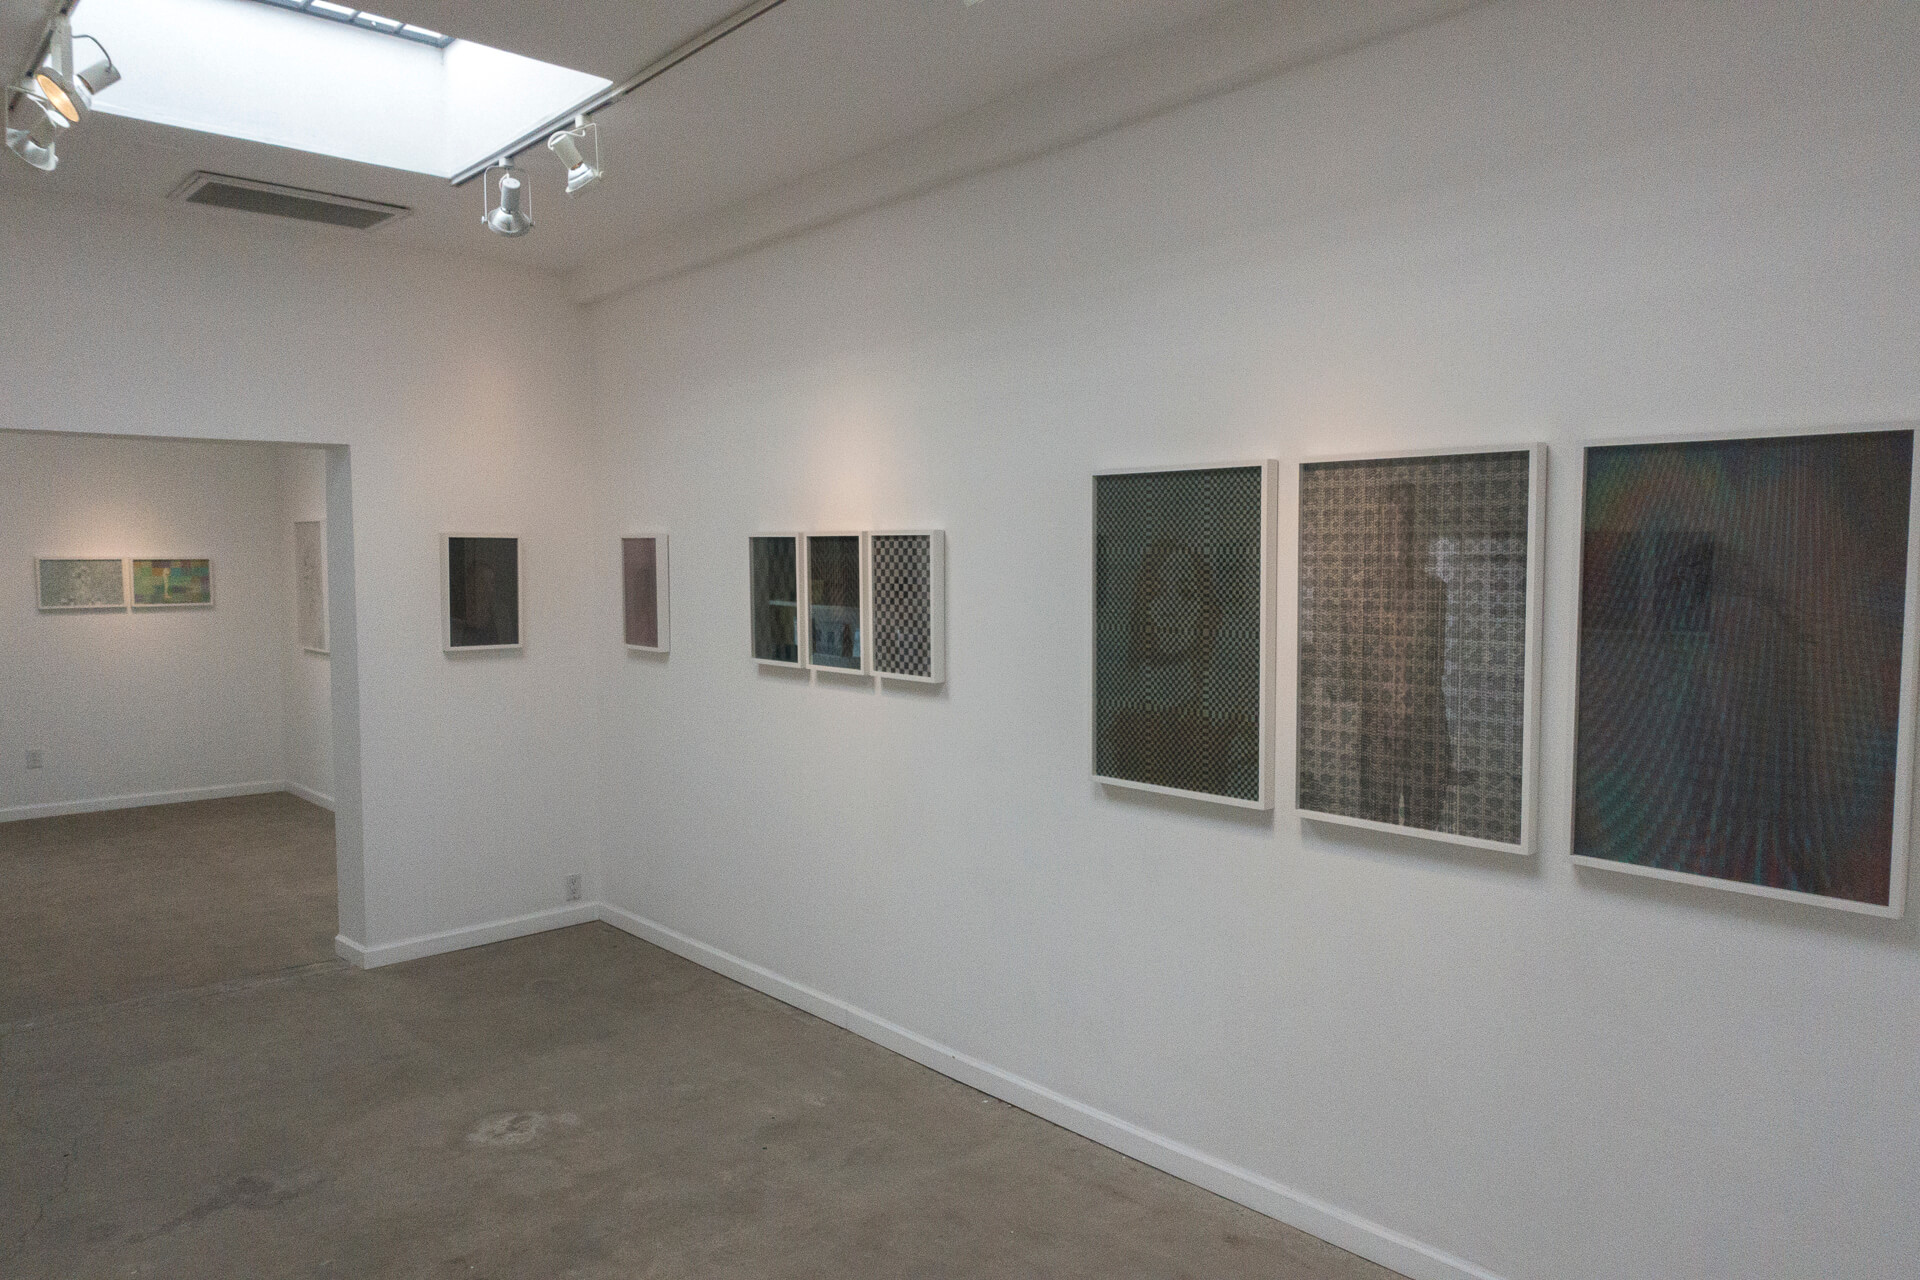 Matthew Swarts @ Kopeikin Gallery, Los Angeles (March 7th - April 18th 2015)